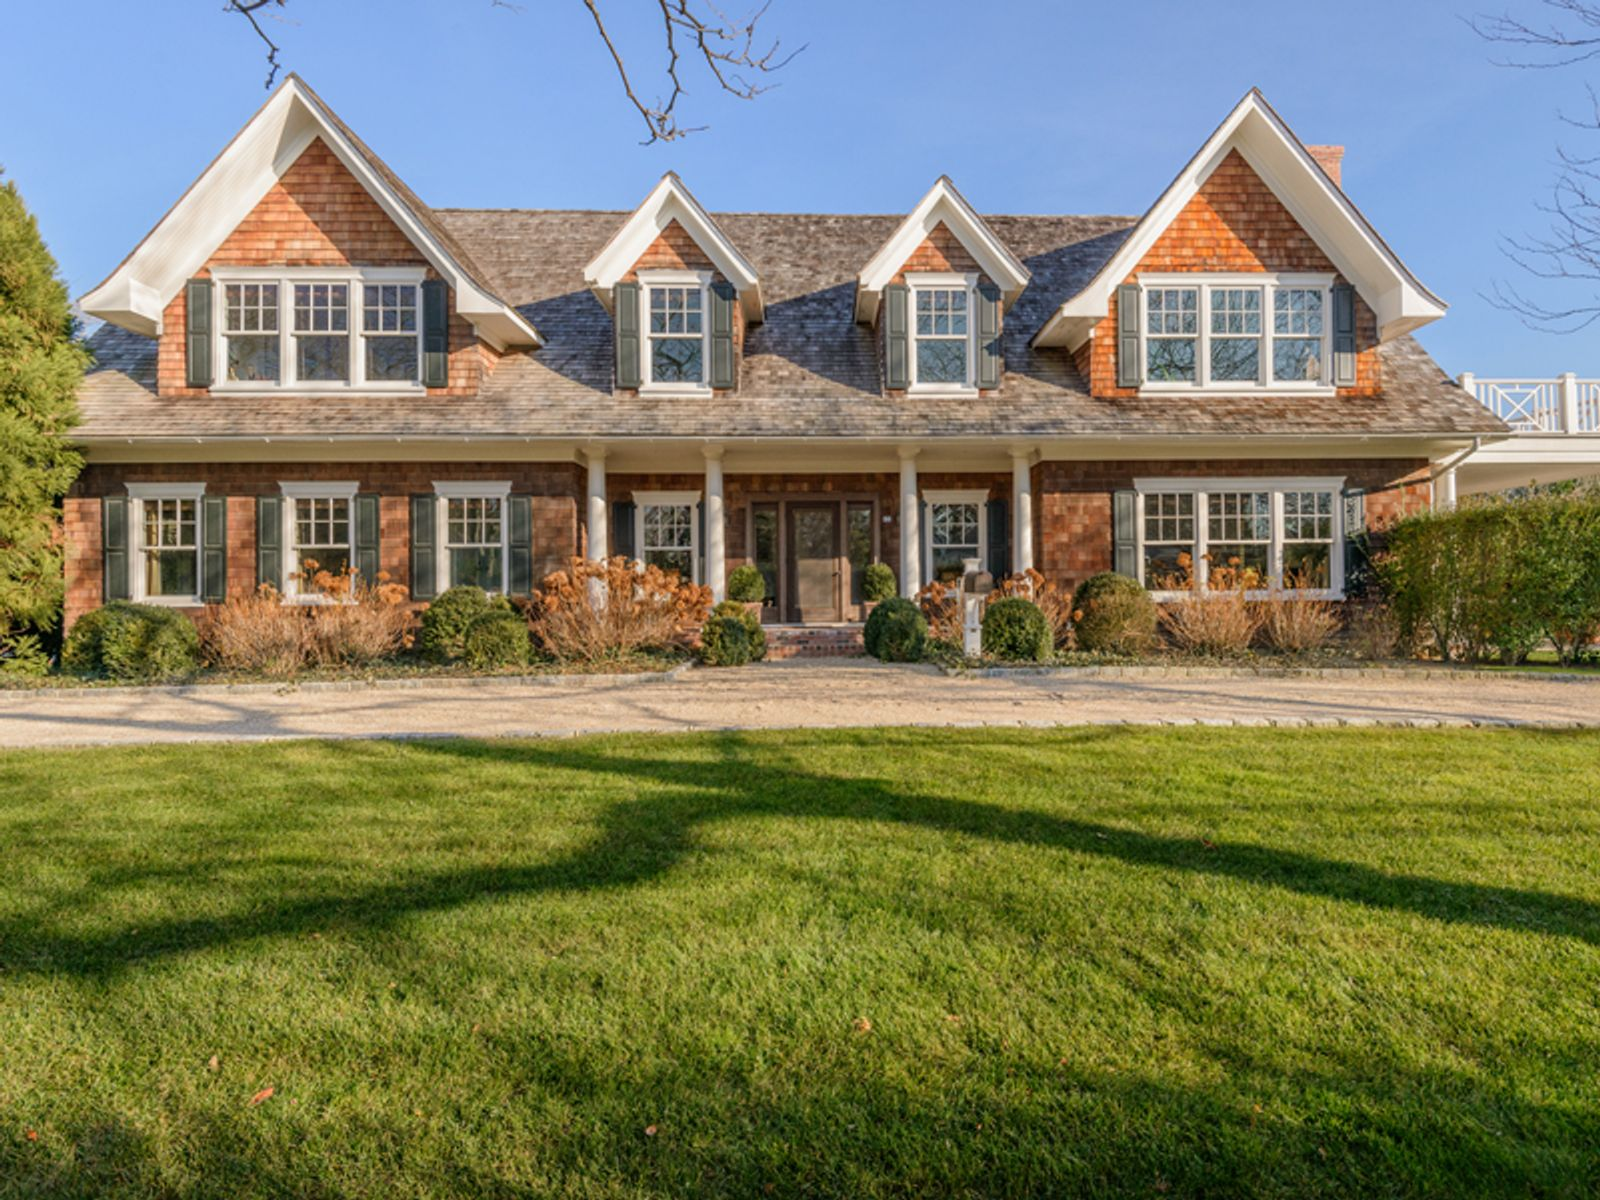 Classy Village Home - Southampton , Southampton NY Single Family Home - Hamptons Real Estate